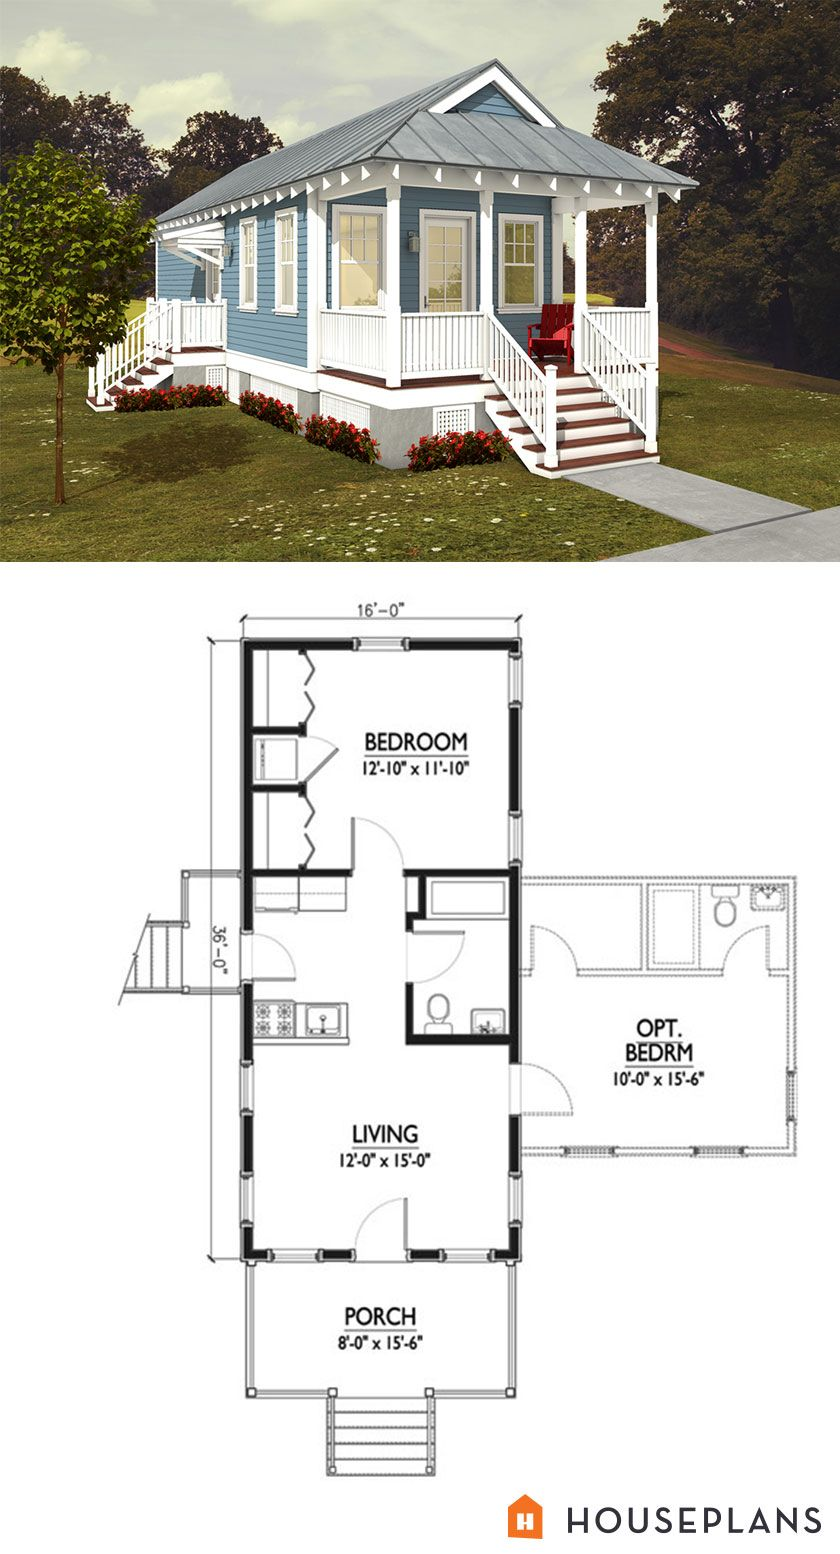 Super easy to build tiny house plans tiny houses house for Super small house plans